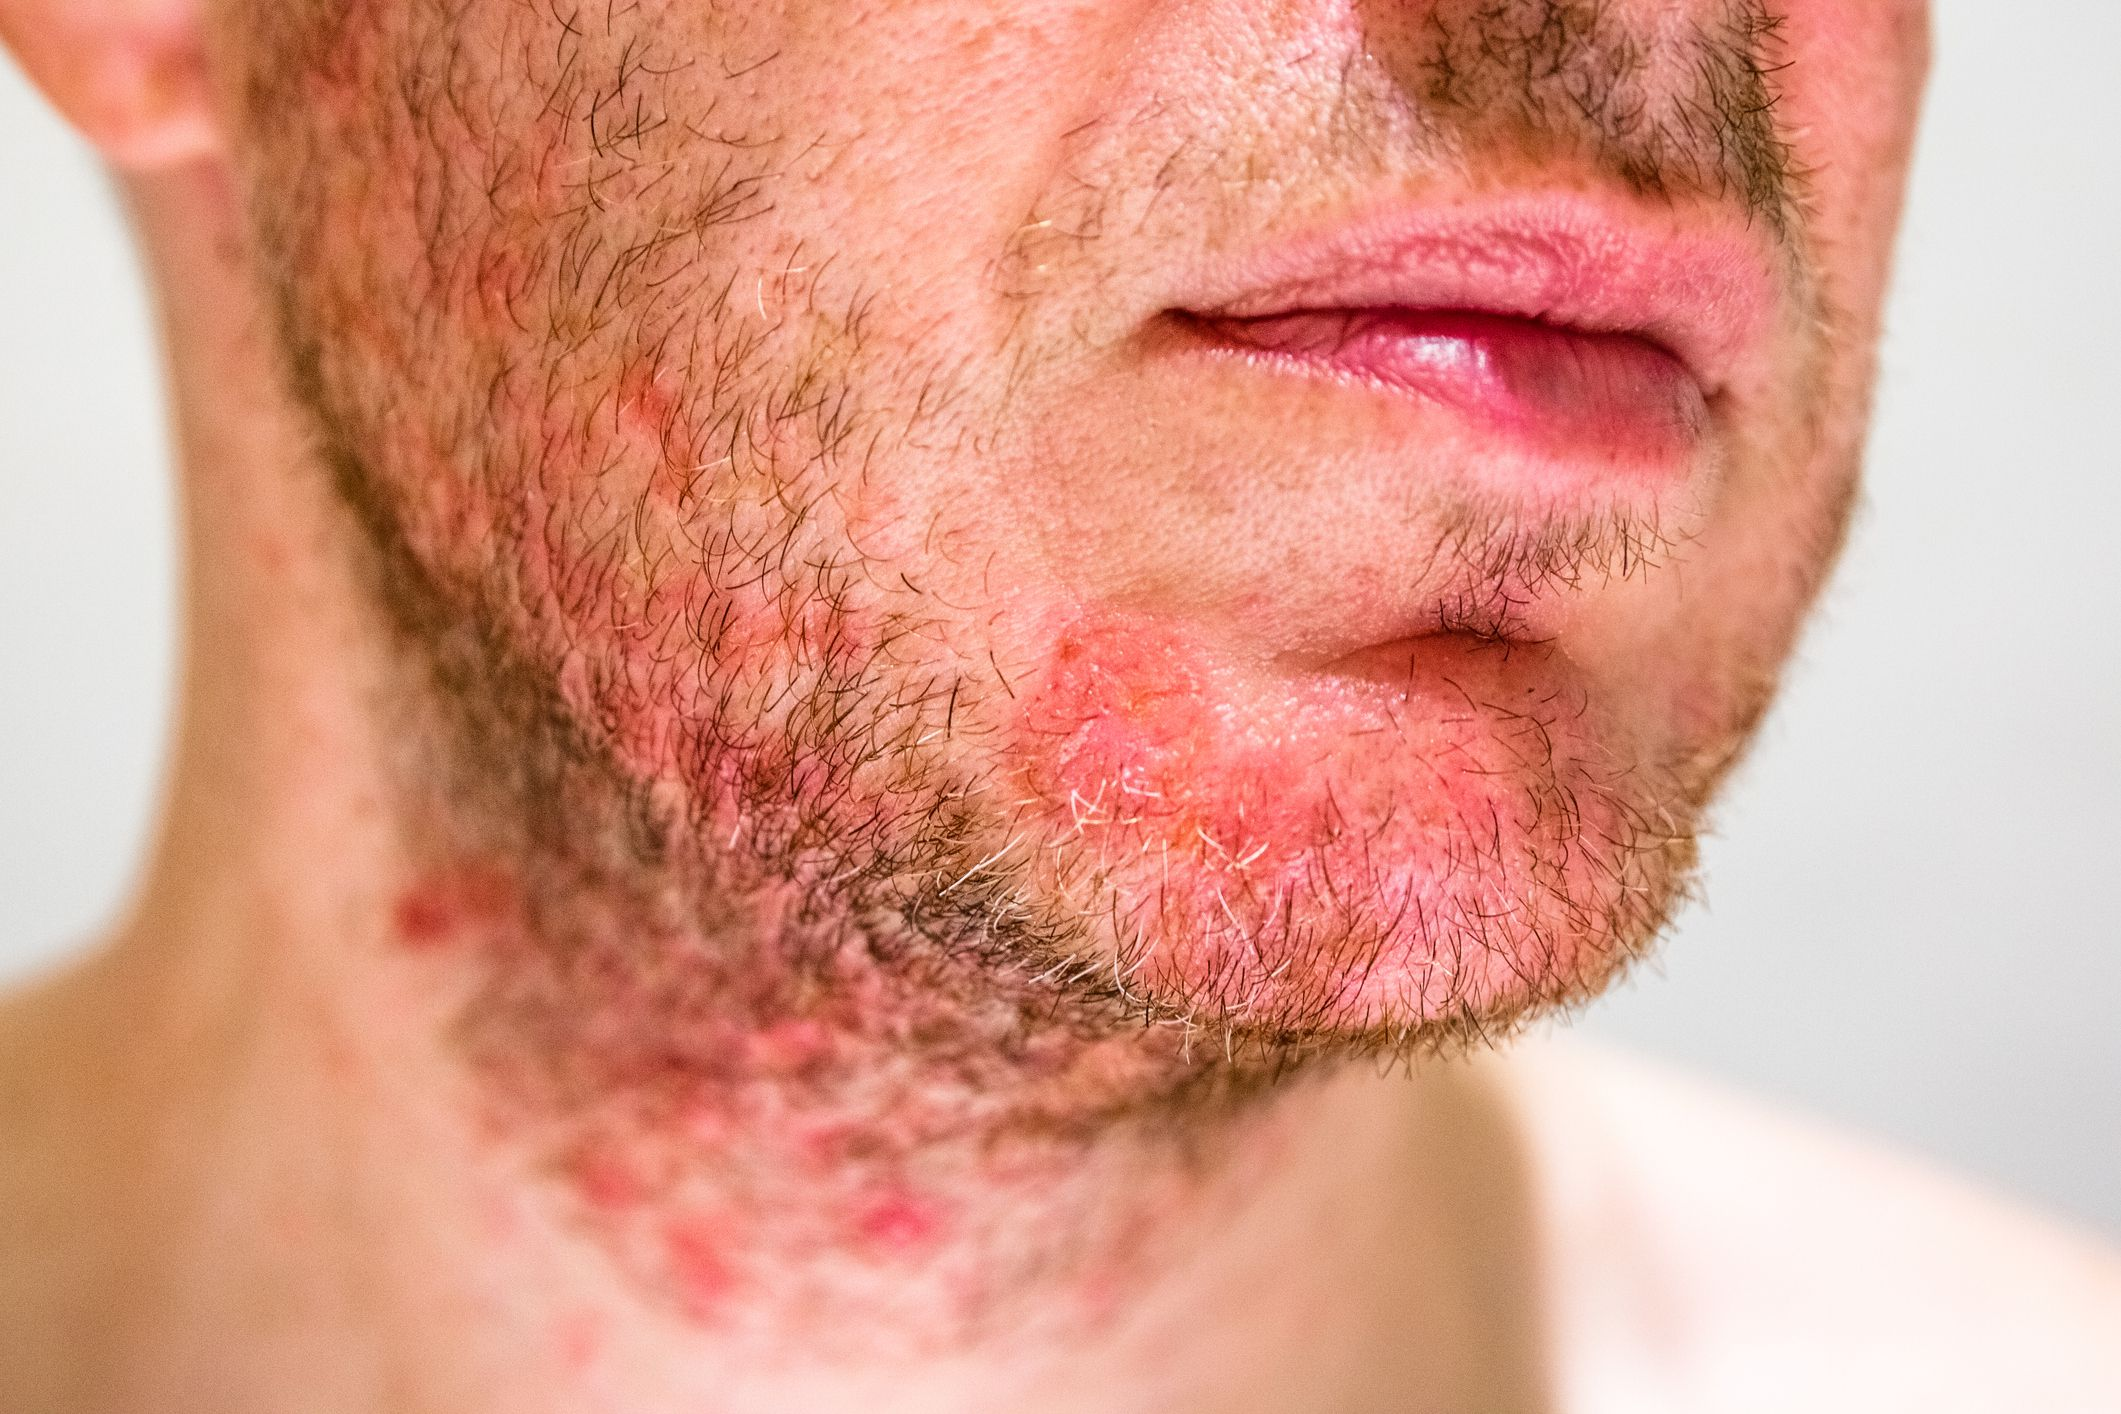 Causes Symptoms And Treatment Of Folliculitis